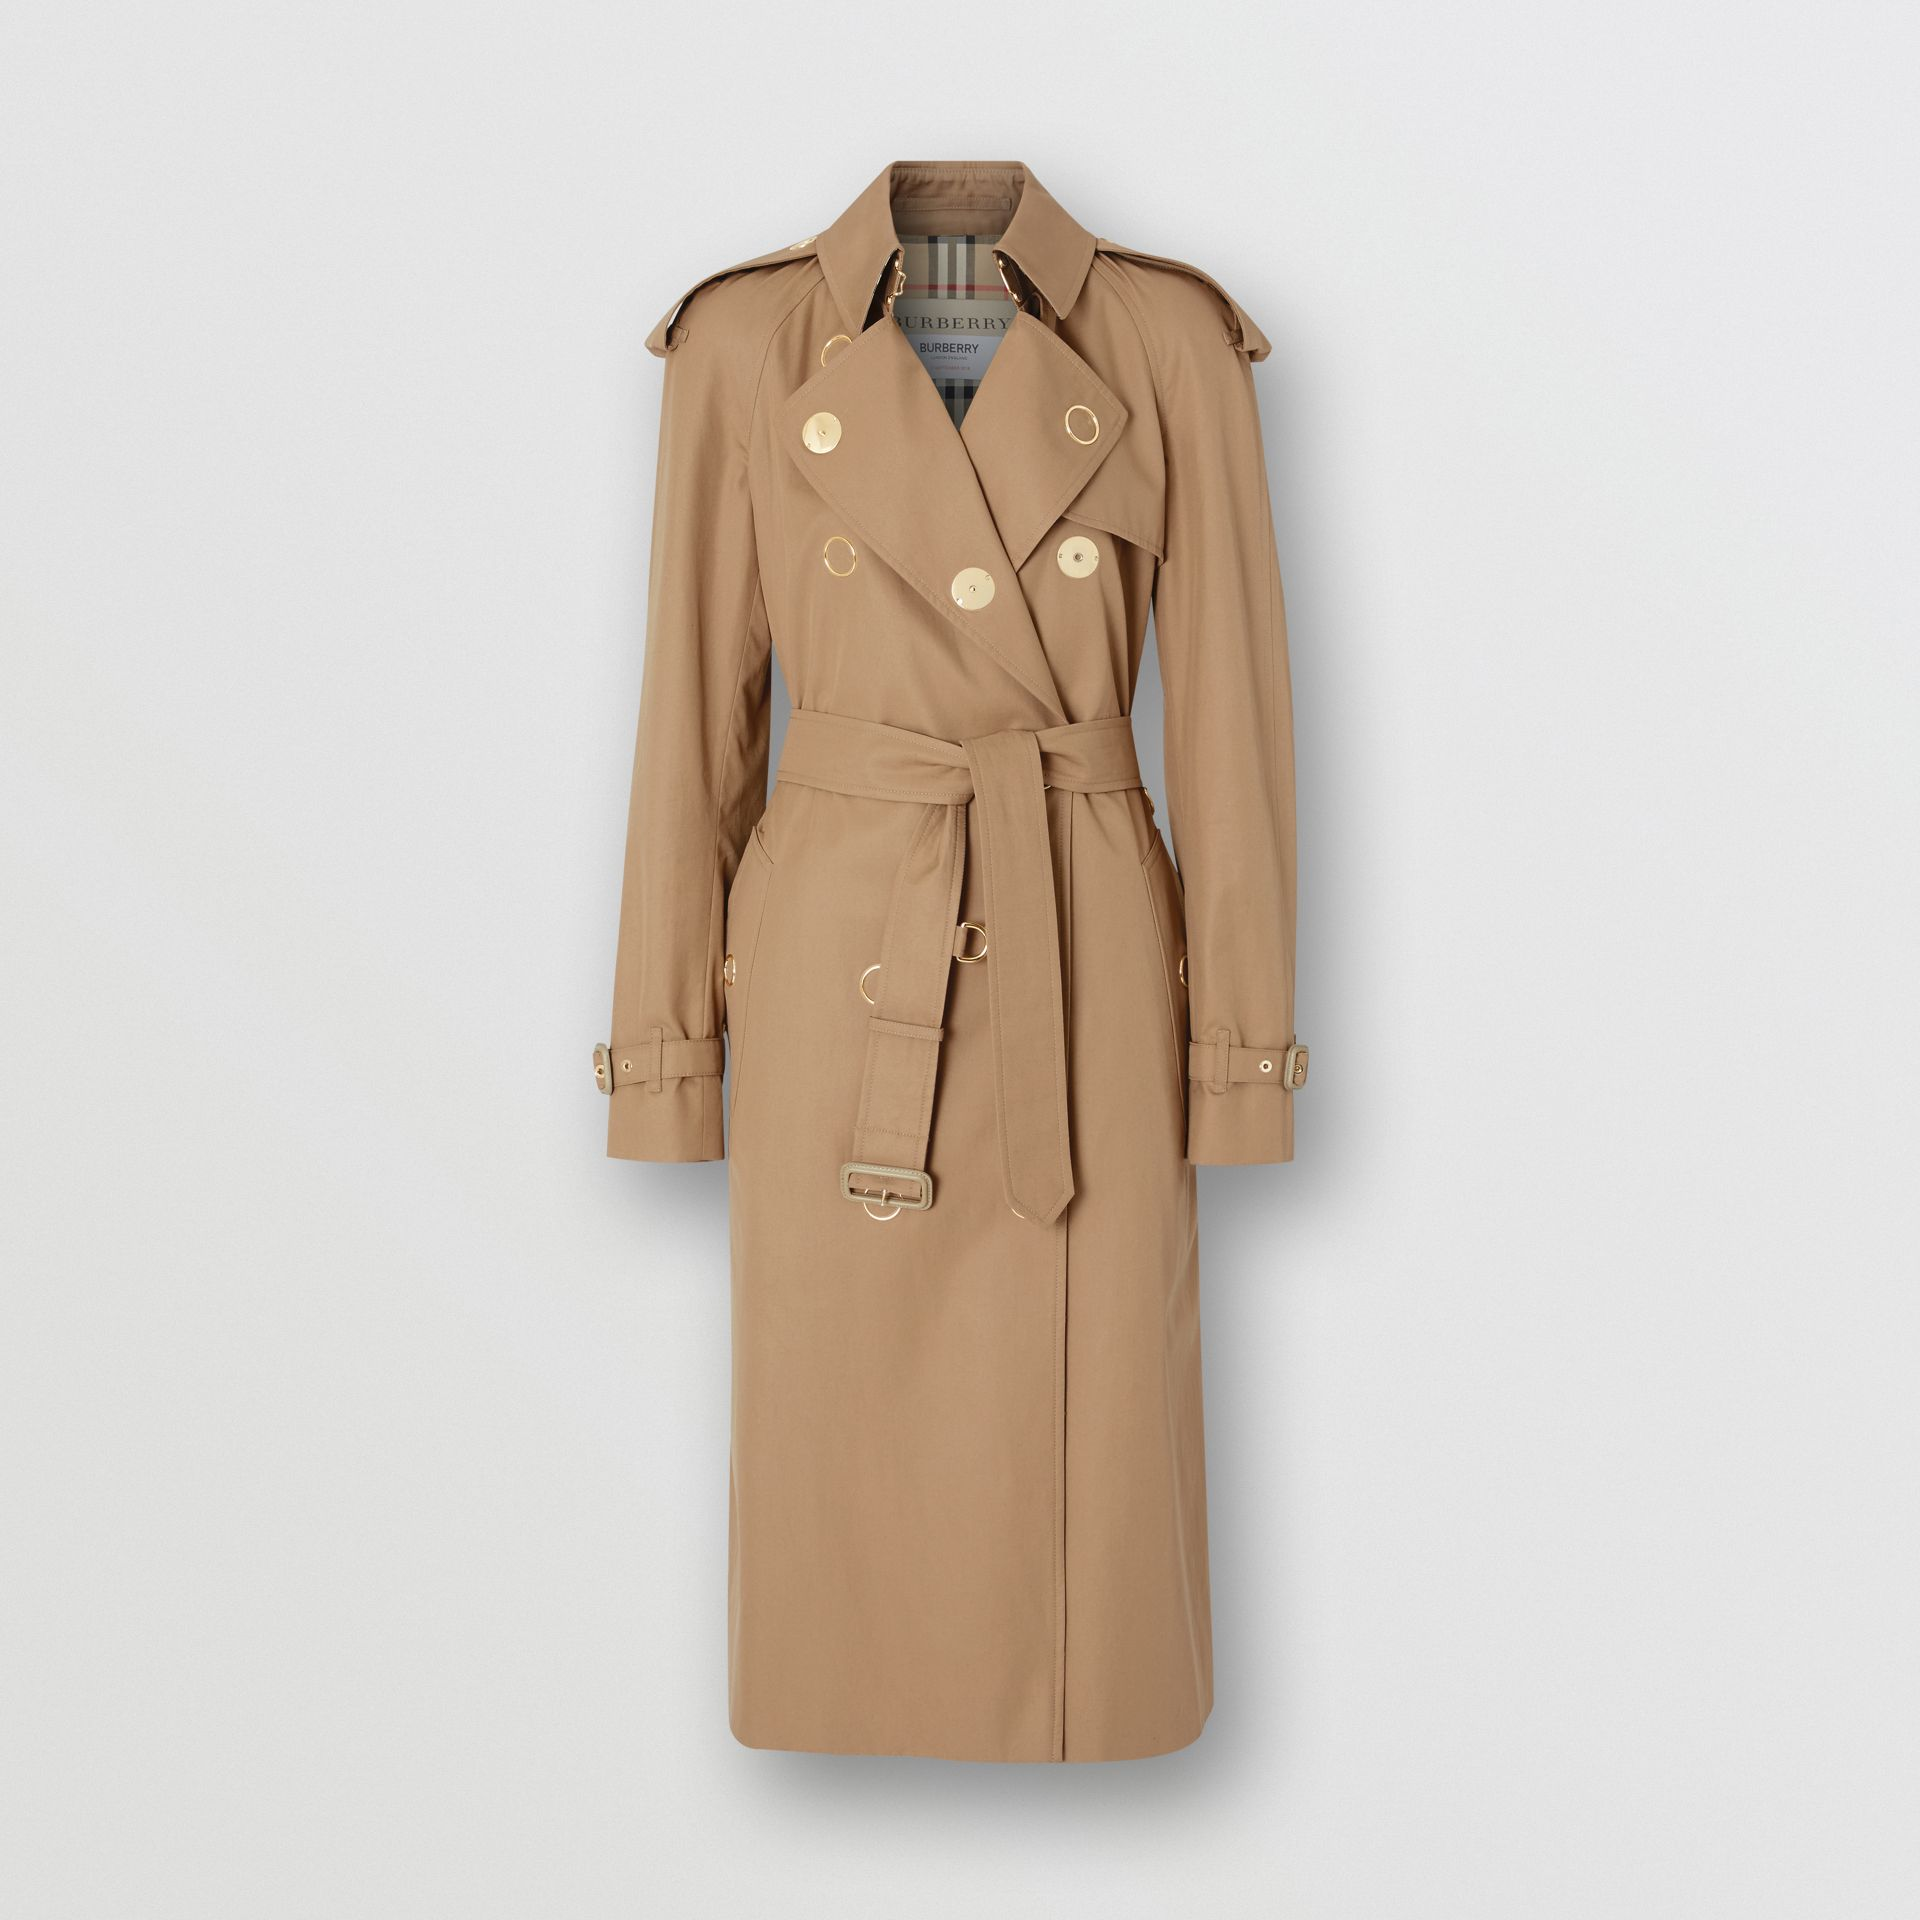 Press-stud Detail Cotton Gabardine Trench Coat in Driftwood - Women | Burberry - gallery image 3